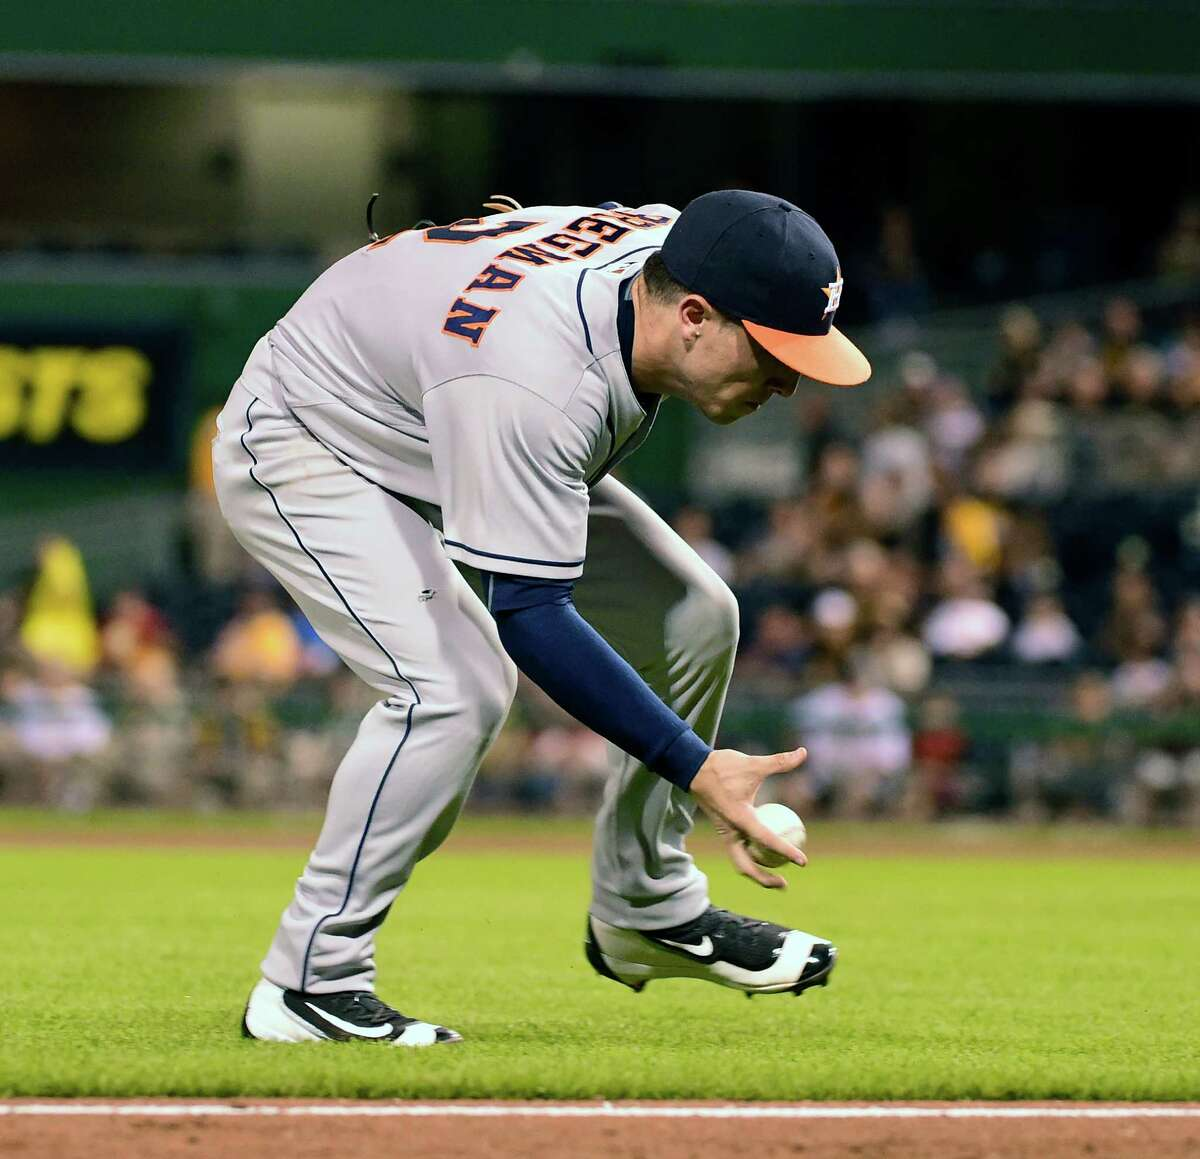 Houston Astros' Alex Bregman fields a ball off the bat of Pittsburgh Pirates' Jordy Mercer in the eighth inning of a baseball game against the Pittsburgh Pirates in Pittsburgh, Monday, Aug. 22, 2016. (AP Photo/Fred Vuich)